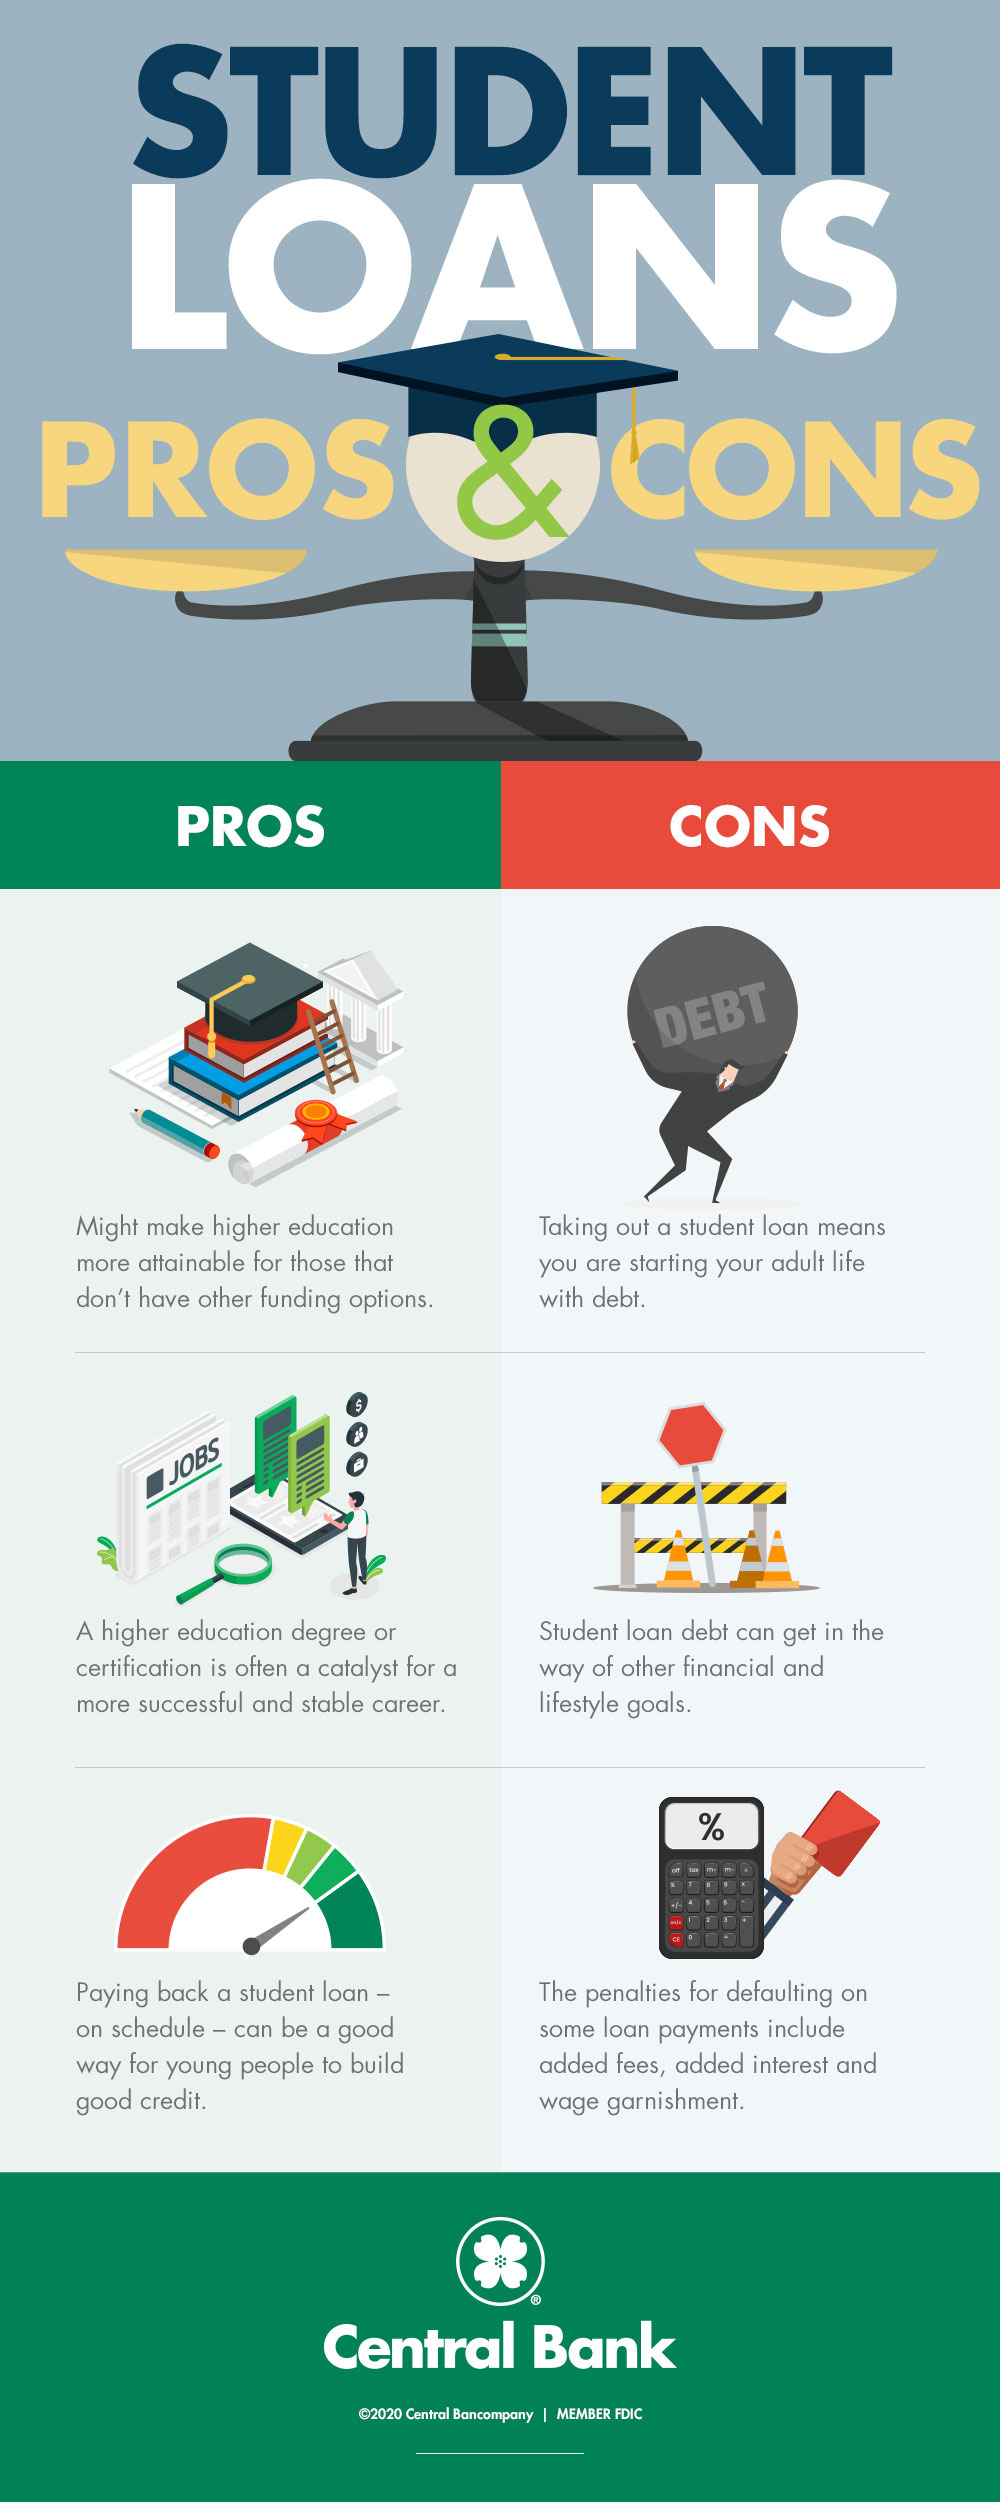 Pros and Cons of Student Loans Infographic